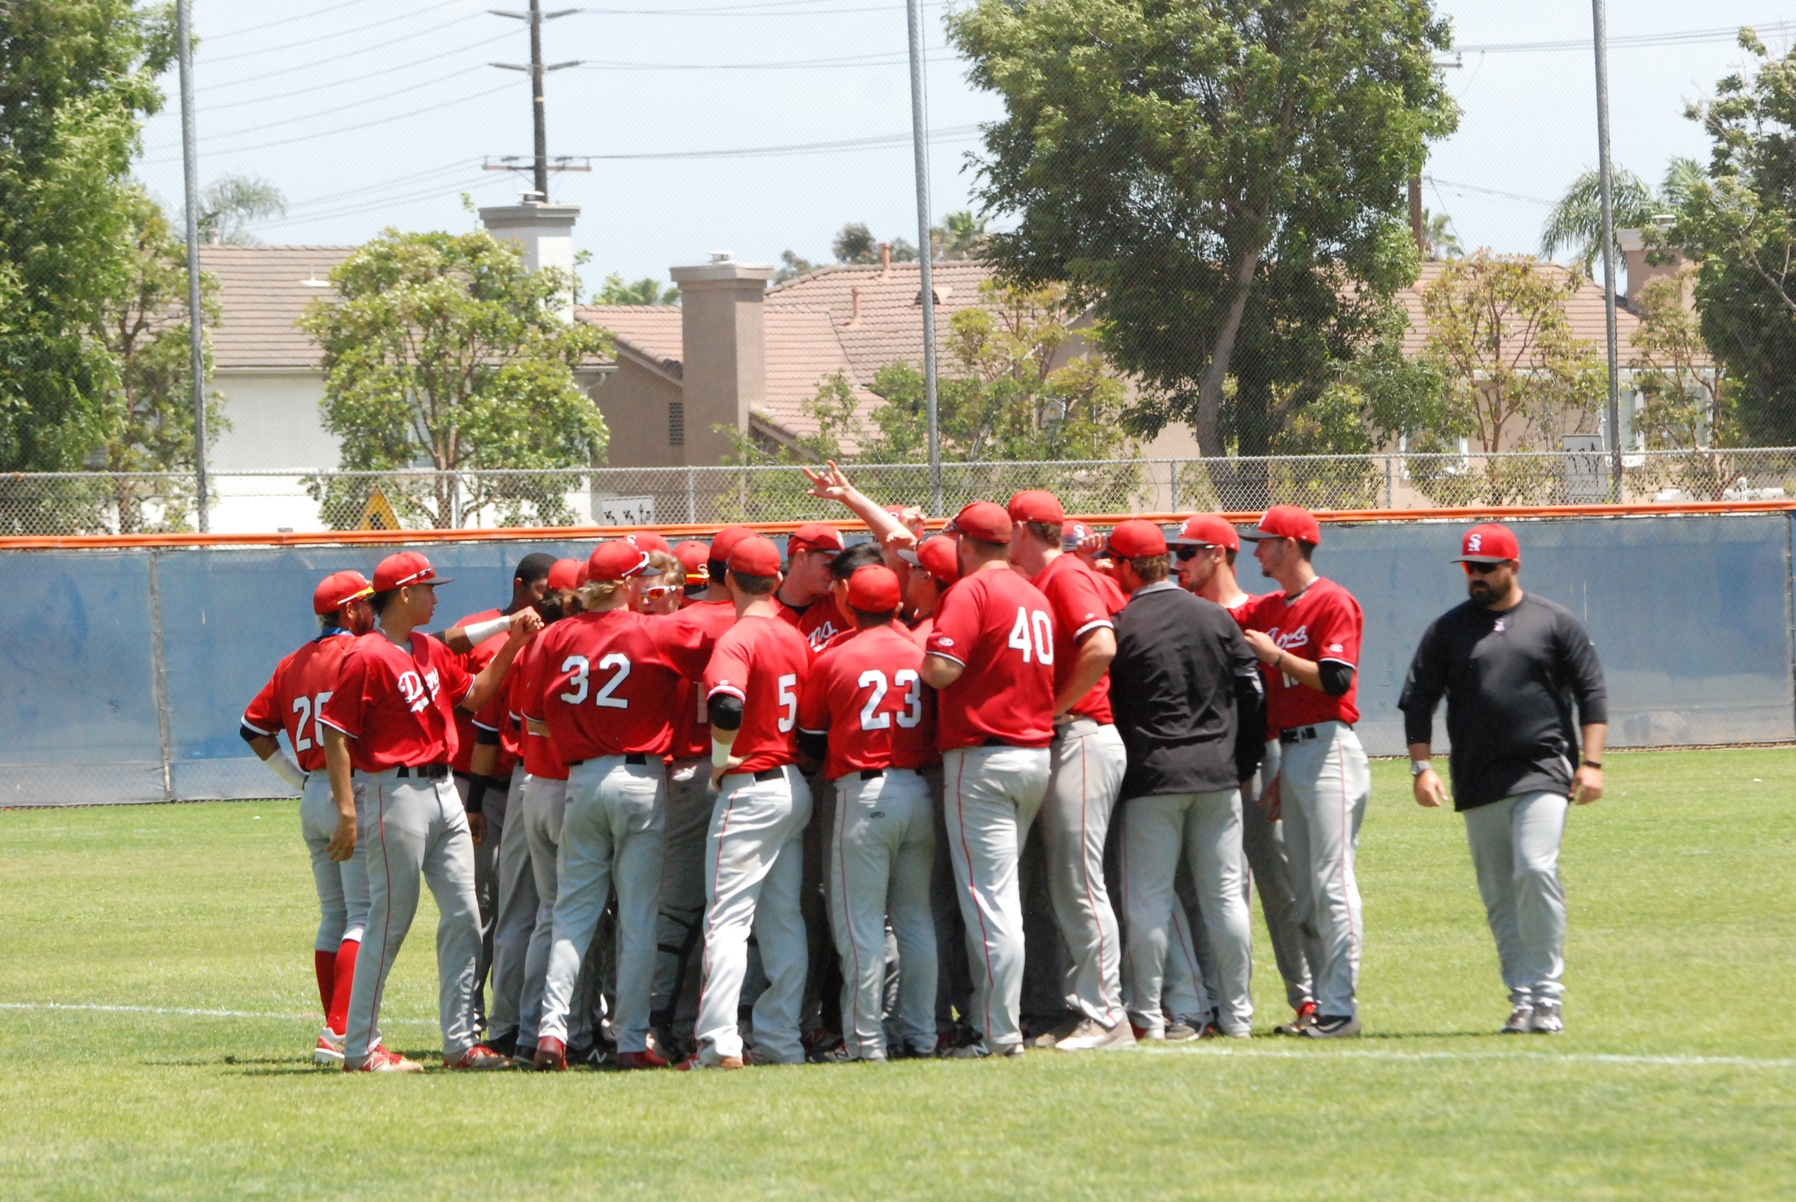 Santa Ana Throws First Punch but Drops Series to OCC in Three